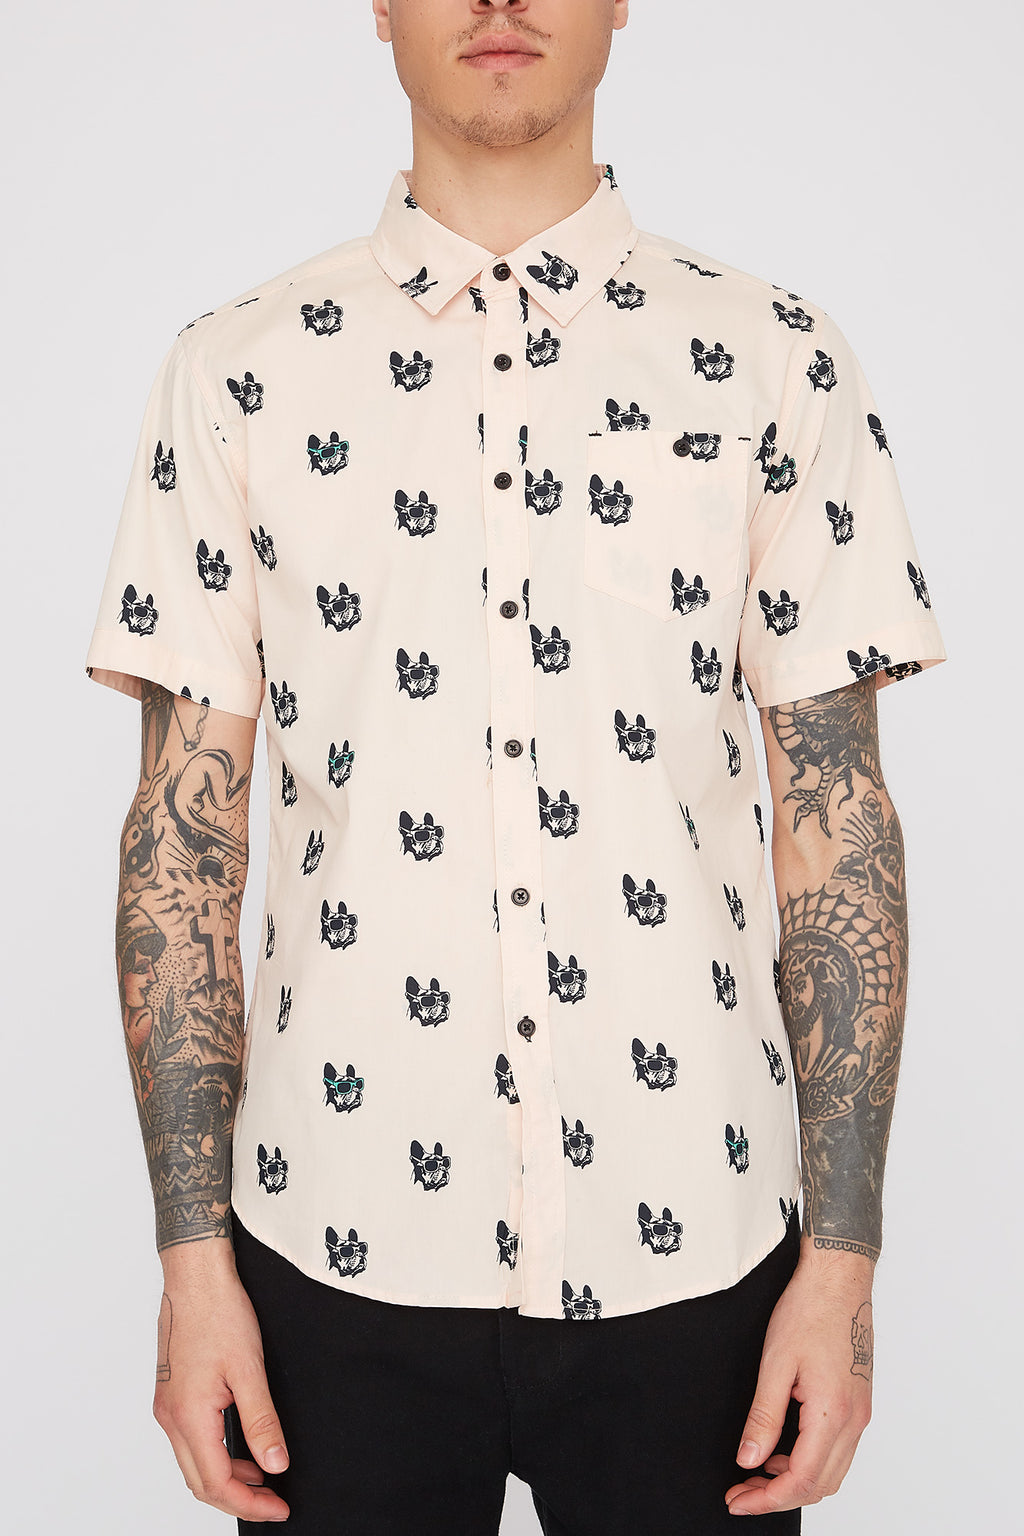 West49 Mens Bulldog Button Up Shirt